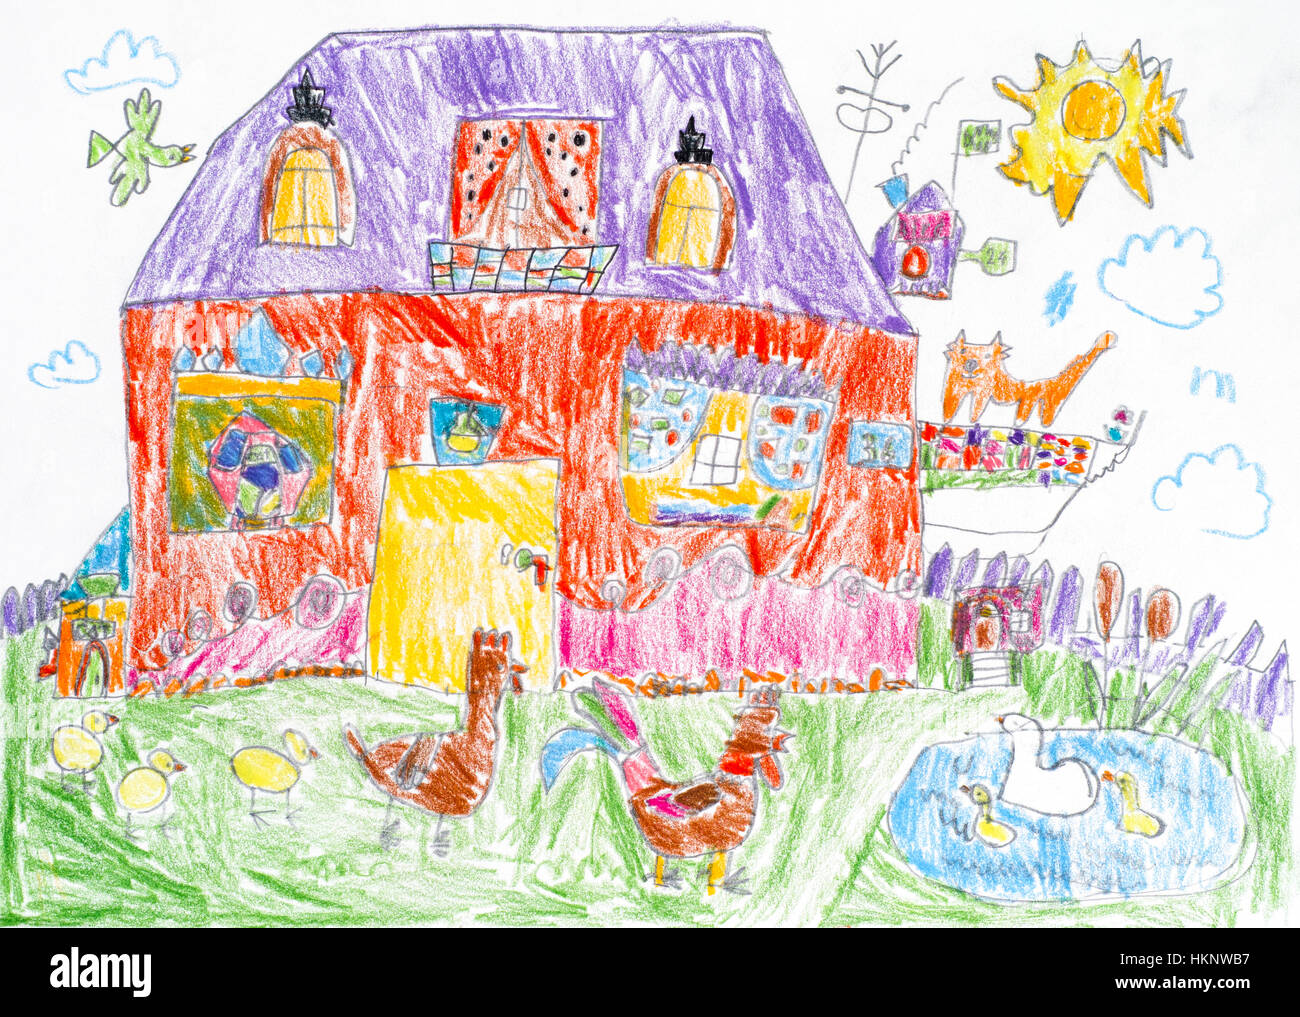 Child pencil drawing. House with red cat on the balcony and back yard with poultry. - Stock Image